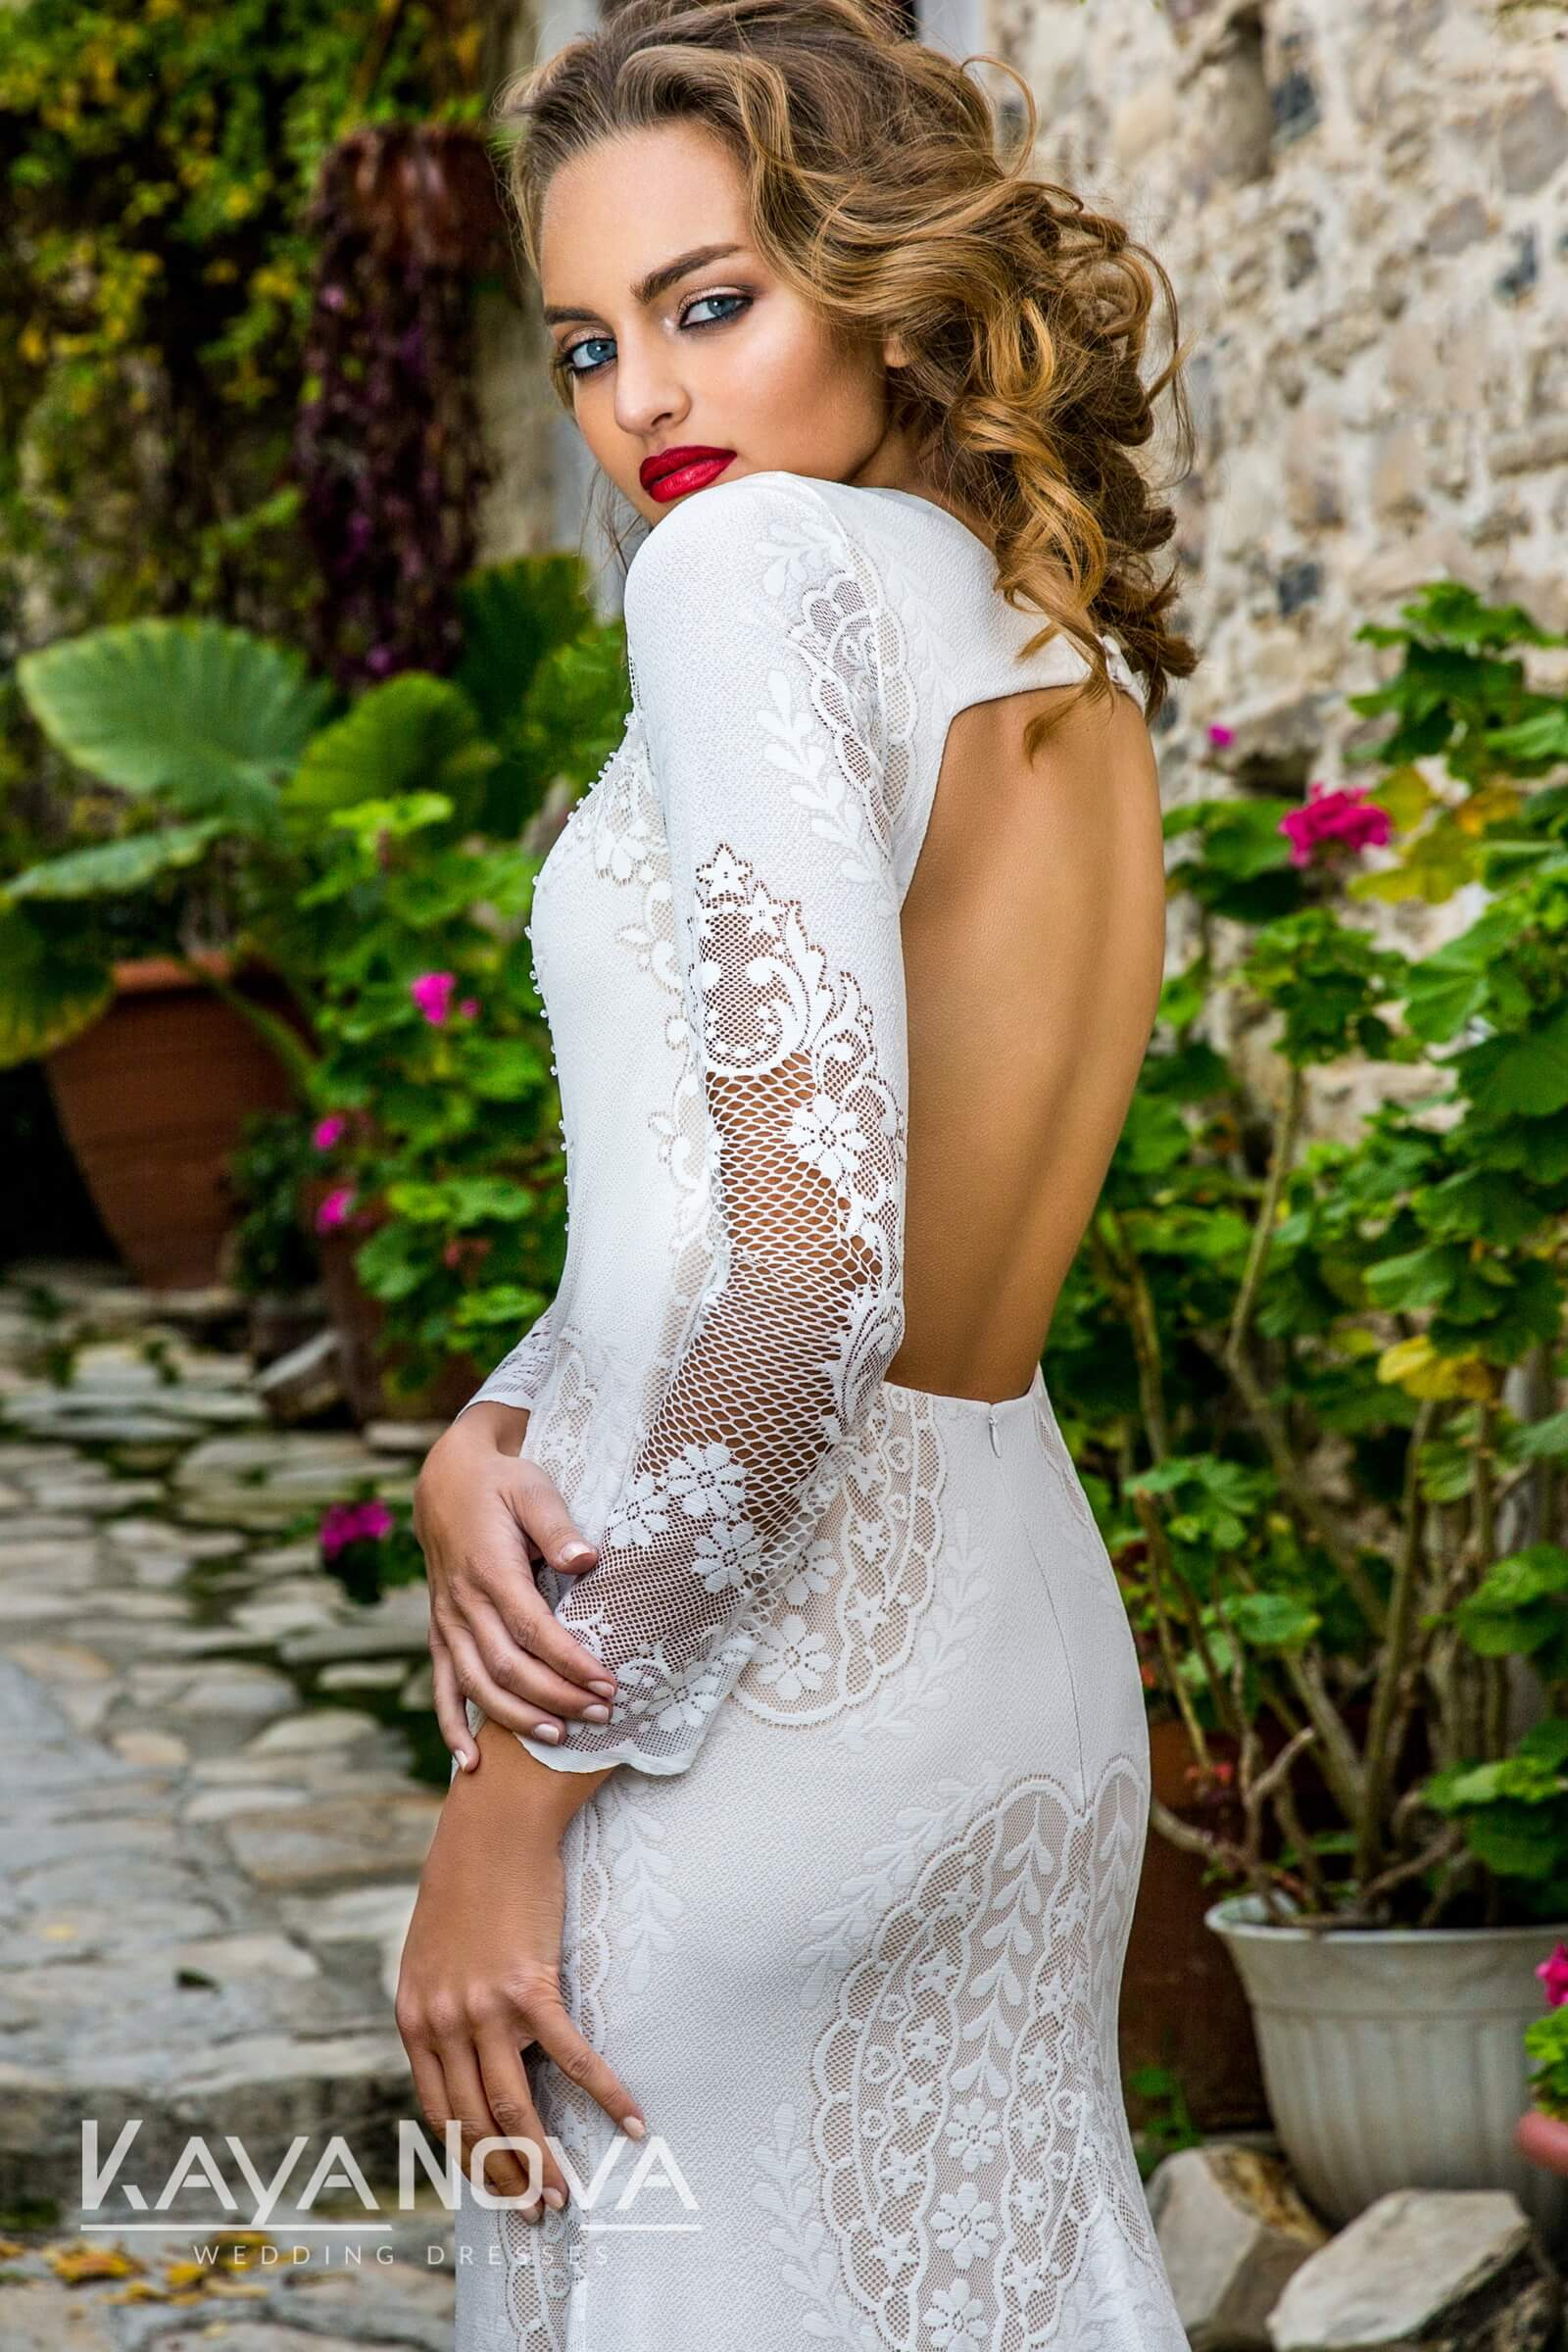 https://kayawedding.com/images/stories/virtuemart/product/Bellissima 3_17.jpg